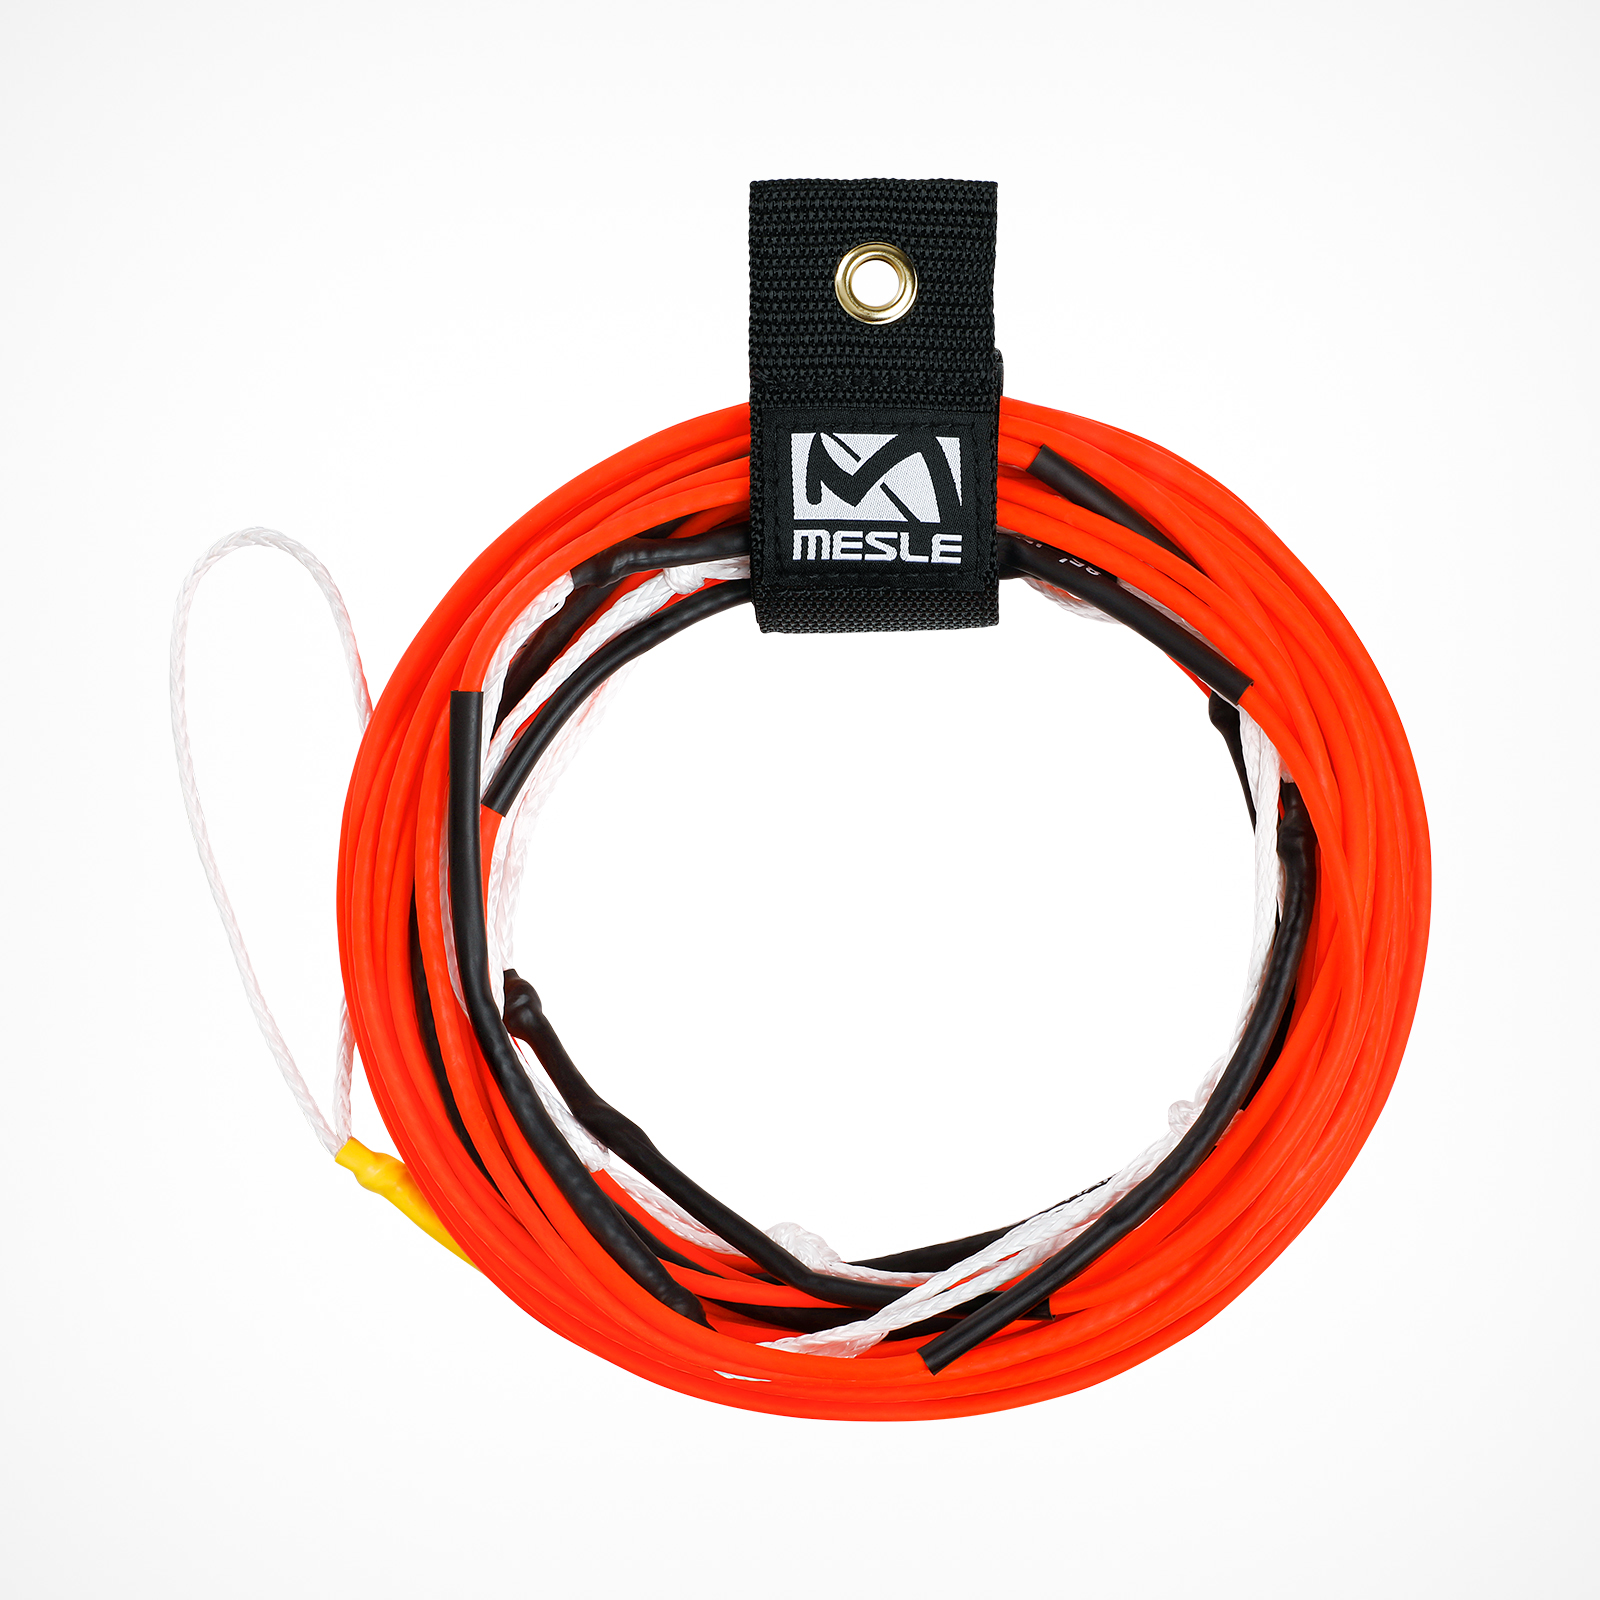 MESLE Wakeboard Rope TEN 80', Non-Stretch Silicone Line in neon orange, Length 24.4 m - 15.2 m, 7 Sections, Dyneema-Silicone for Competitions, floating, inclusive Rope Keeper